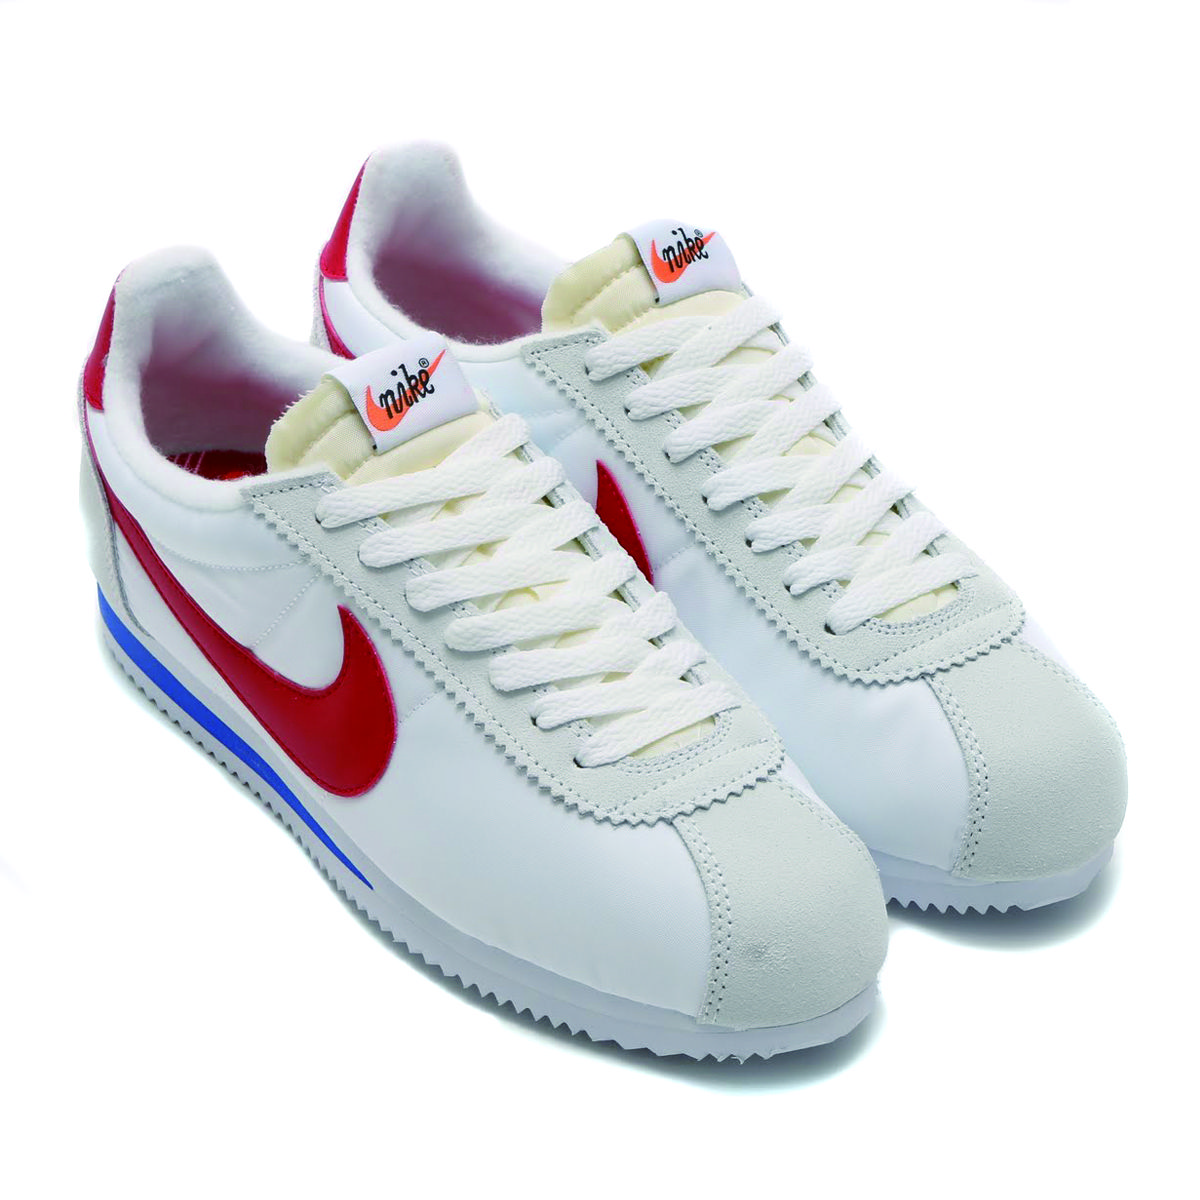 best website 497d9 f14b1 NIKE CLASSIC CORTEZ NYLON PREM QS WHITE   VARSITY RED-VARSITY ROYAL   atmos  Official mail order  shoes   sneakers, fashion atmos